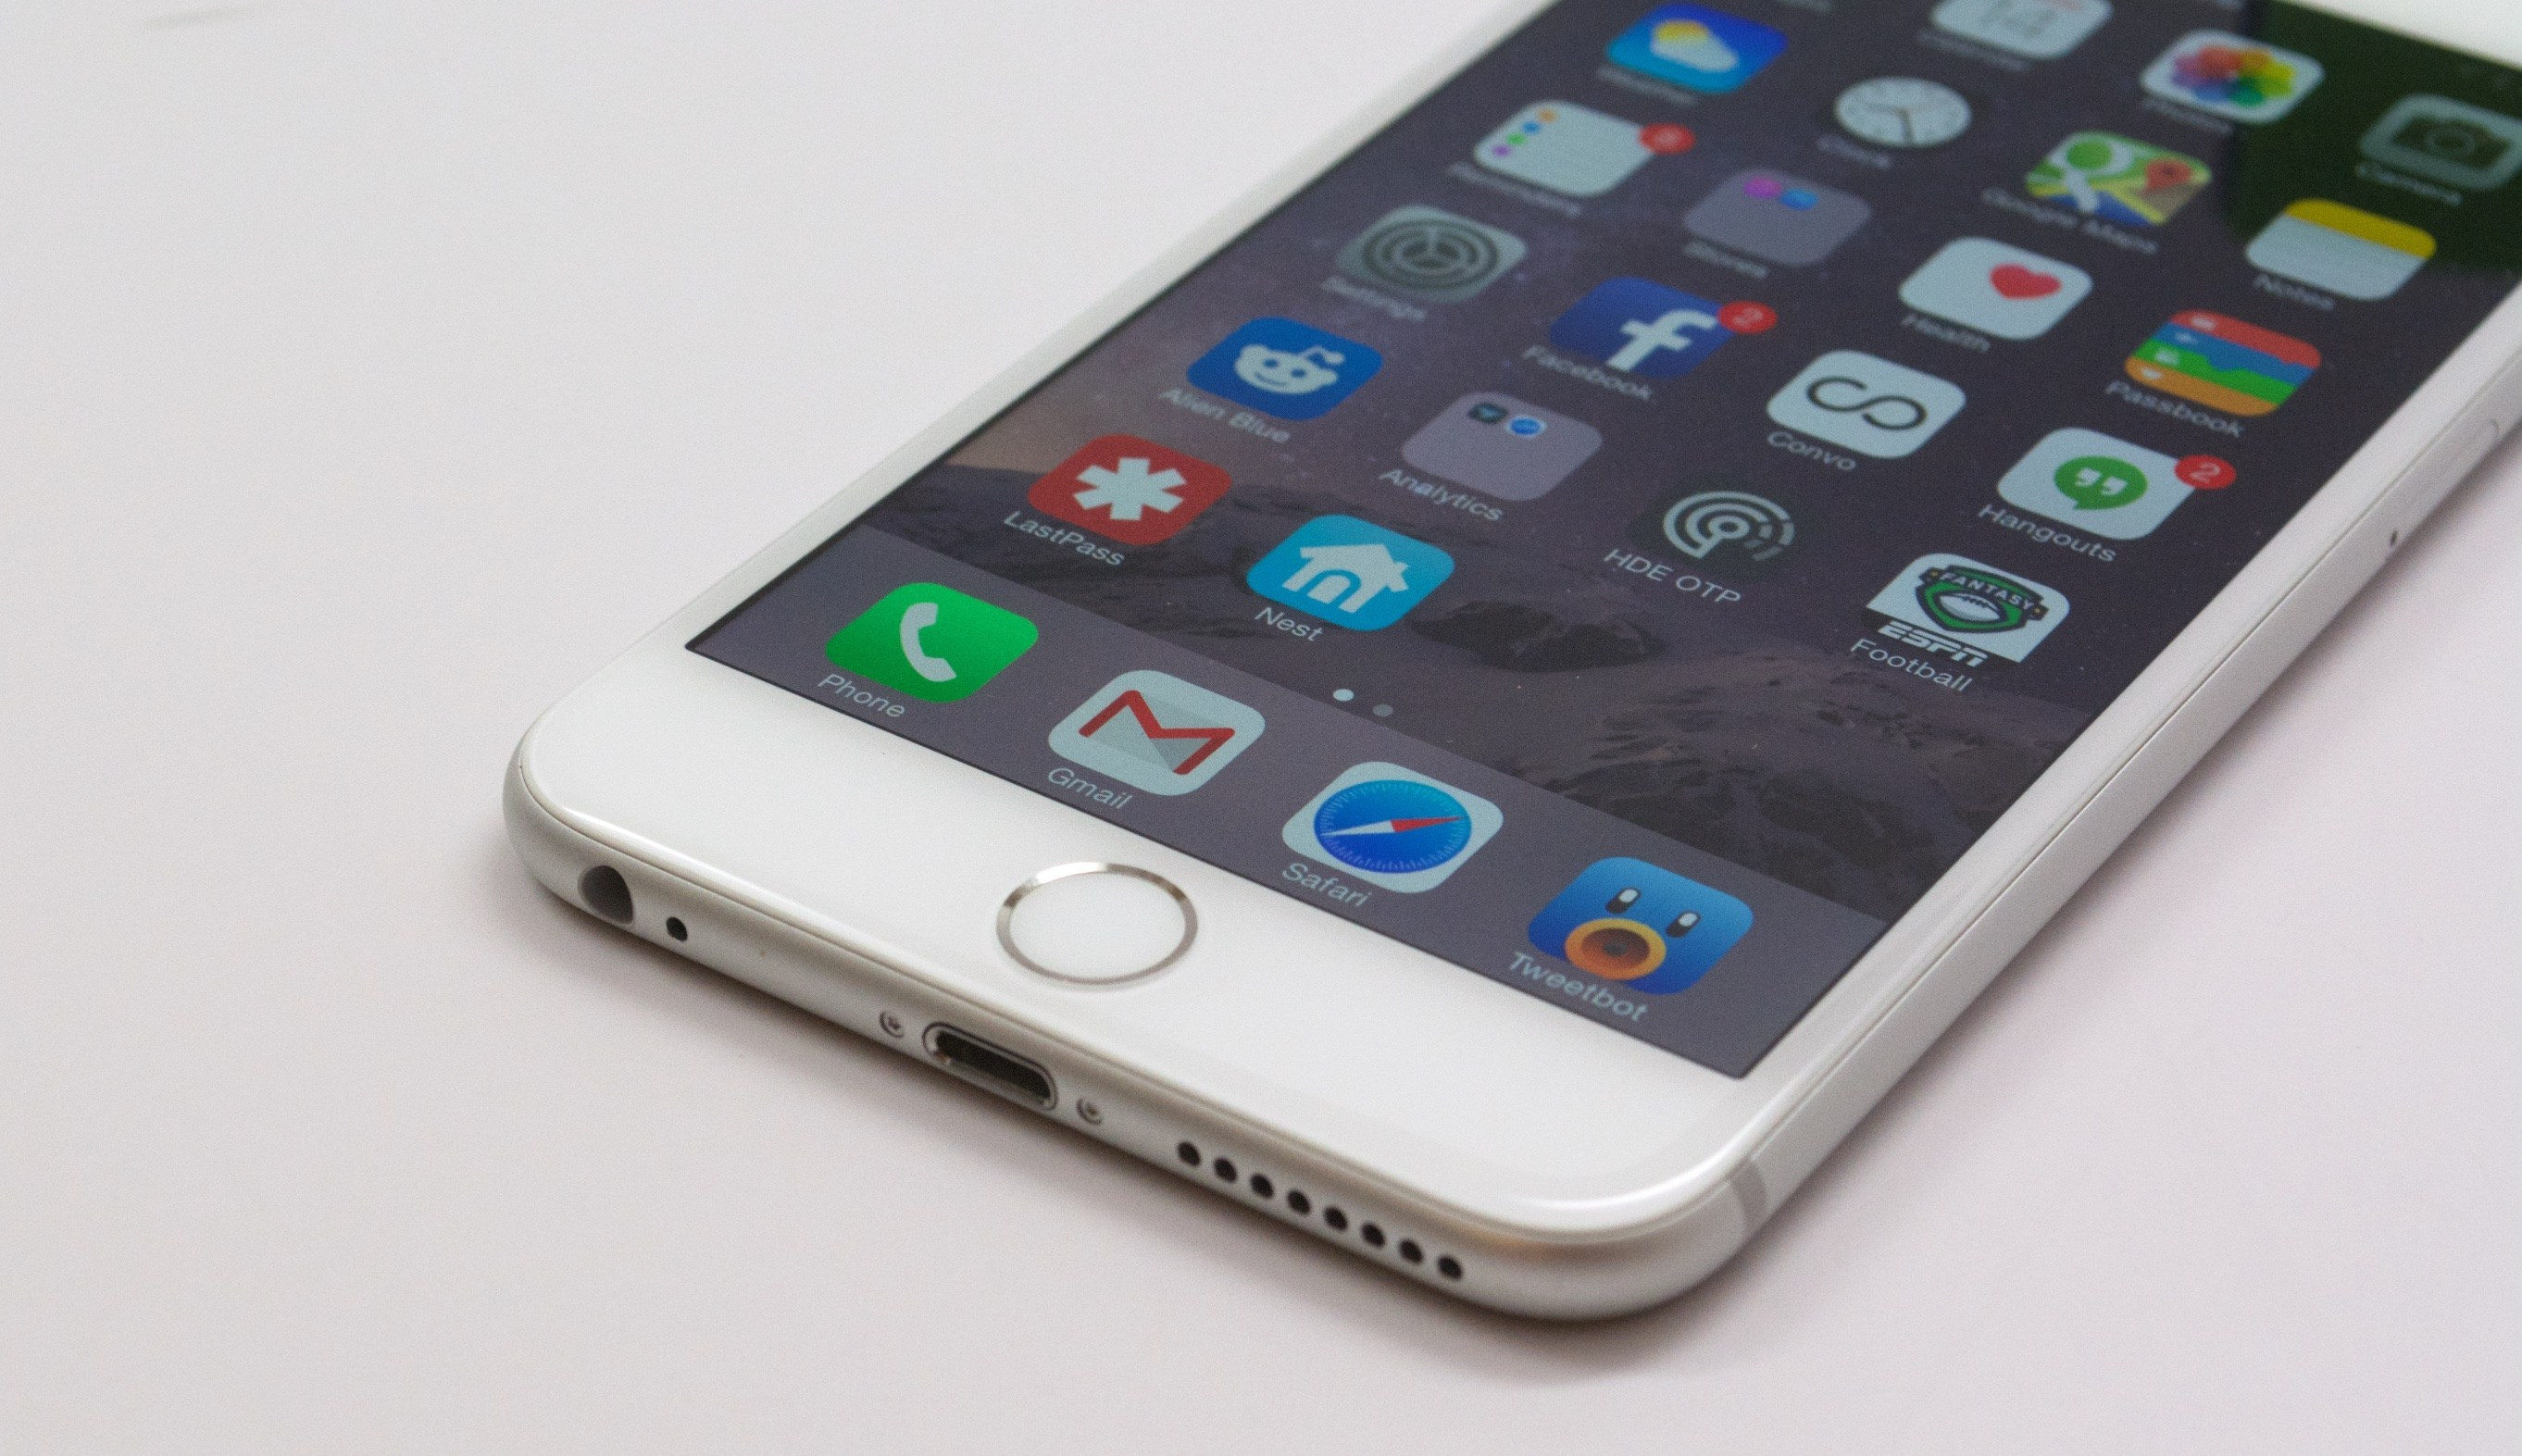 5 Common iPhone Problems and How to Fix Them